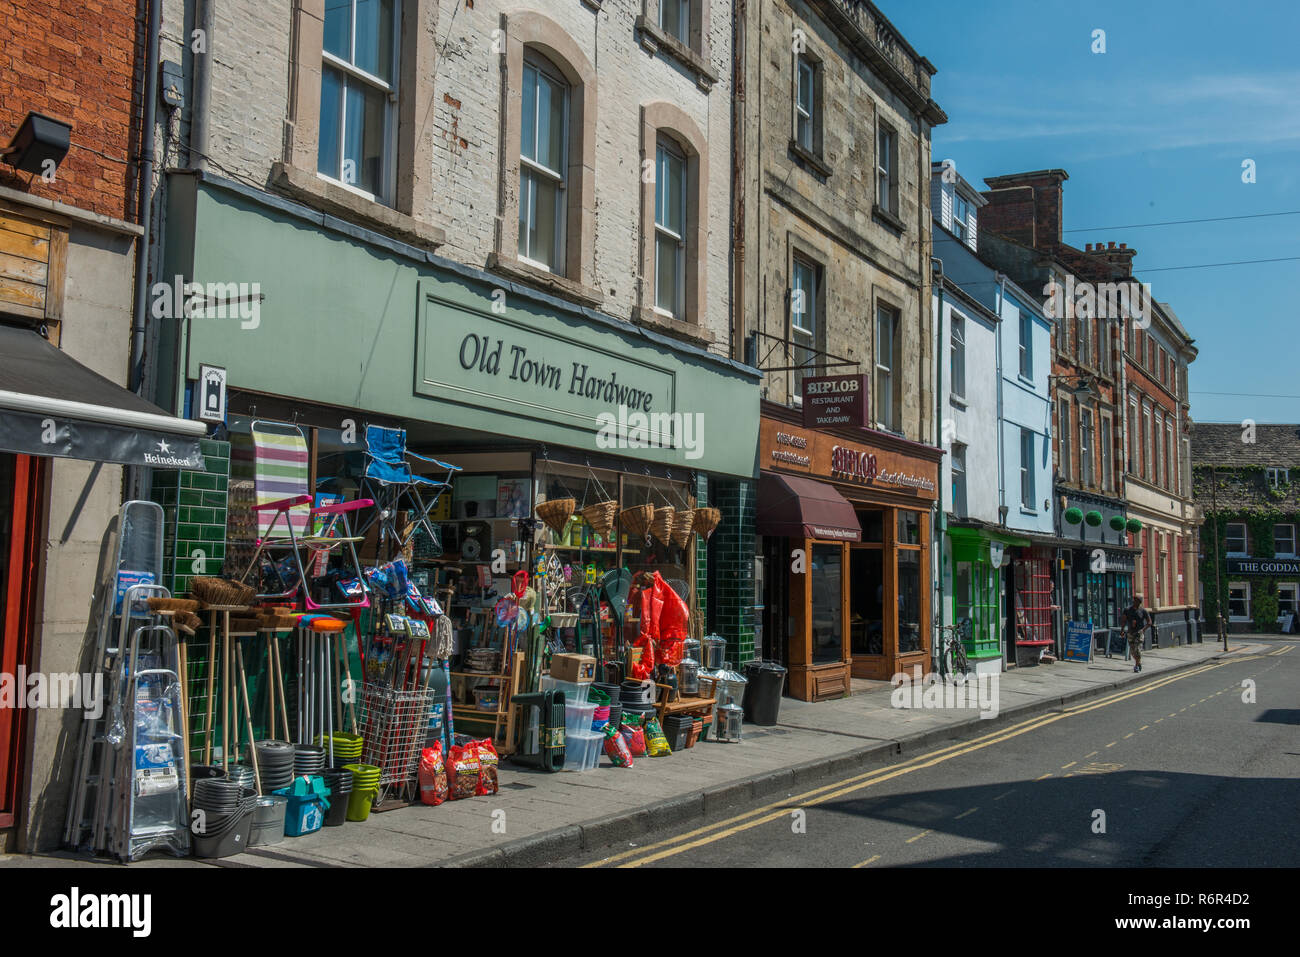 Traditional Hardware Shop Stock Photos & Traditional Hardware Shop